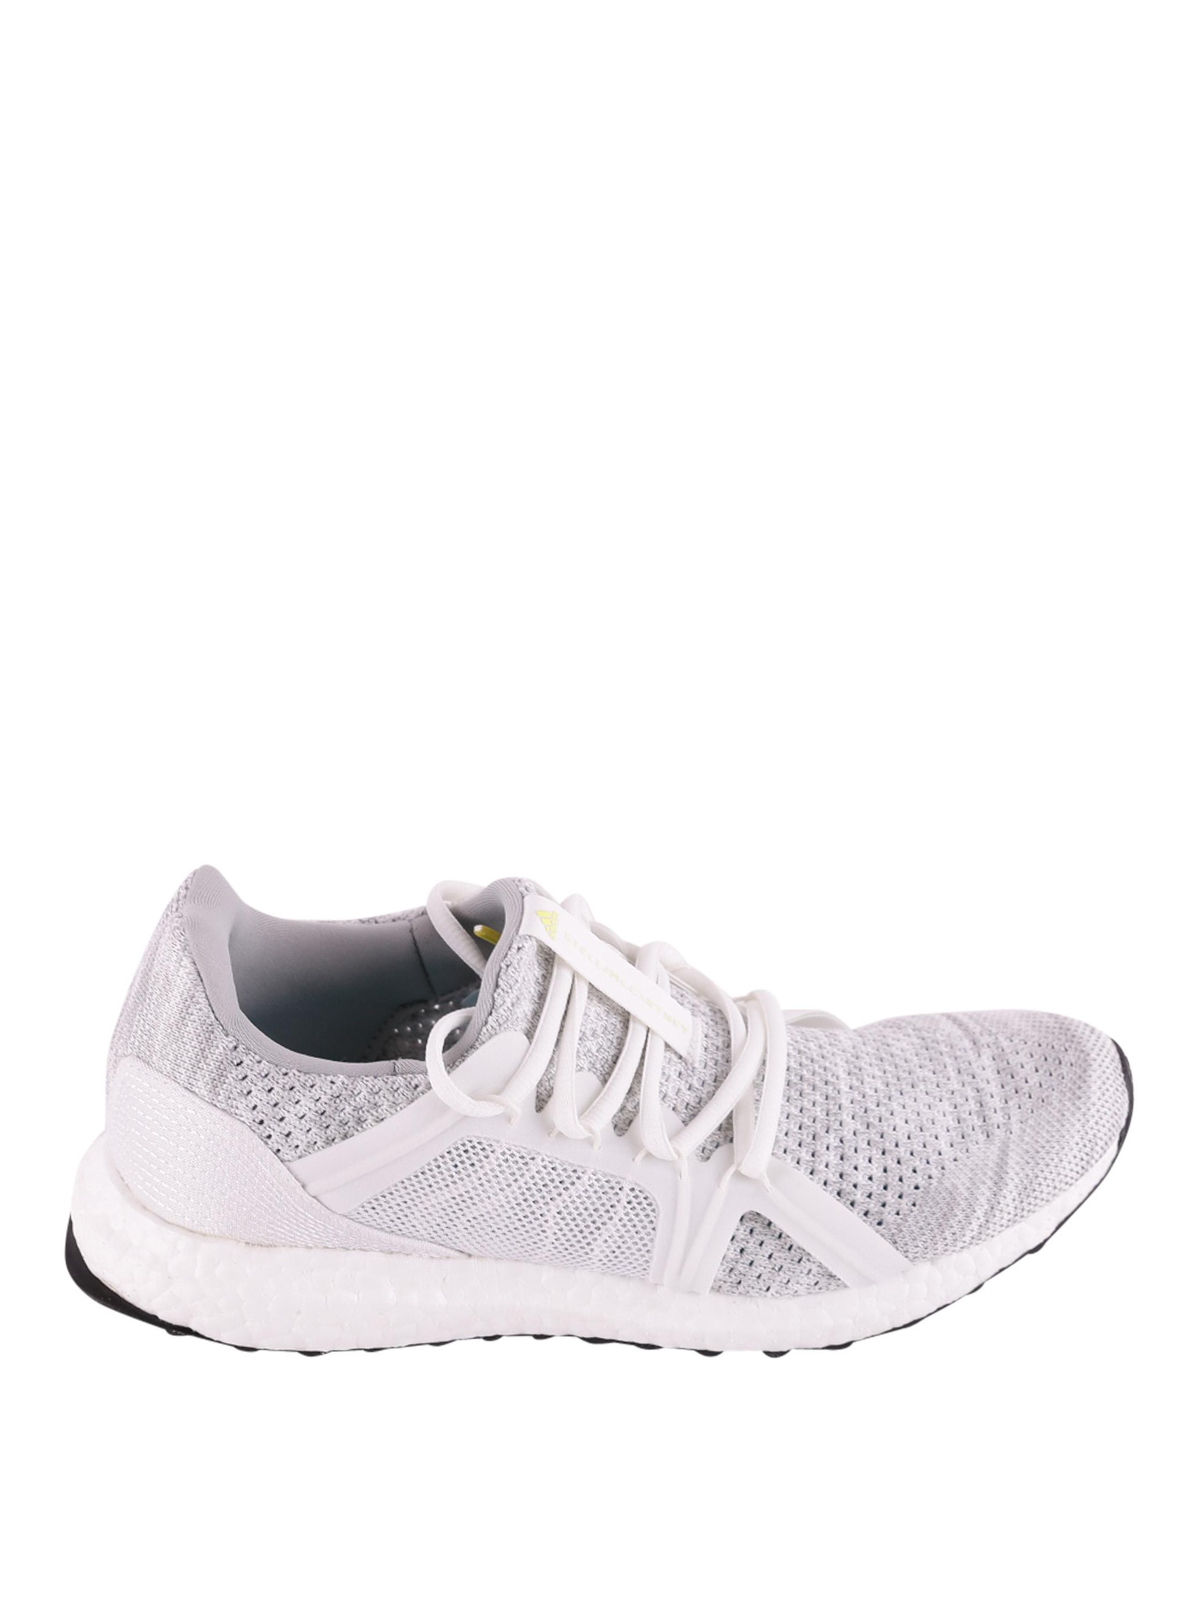 a02d6366d0c4c ADIDAS BY STELLA MCCARTNEY  trainers - Ultraboost Parley running sneakers